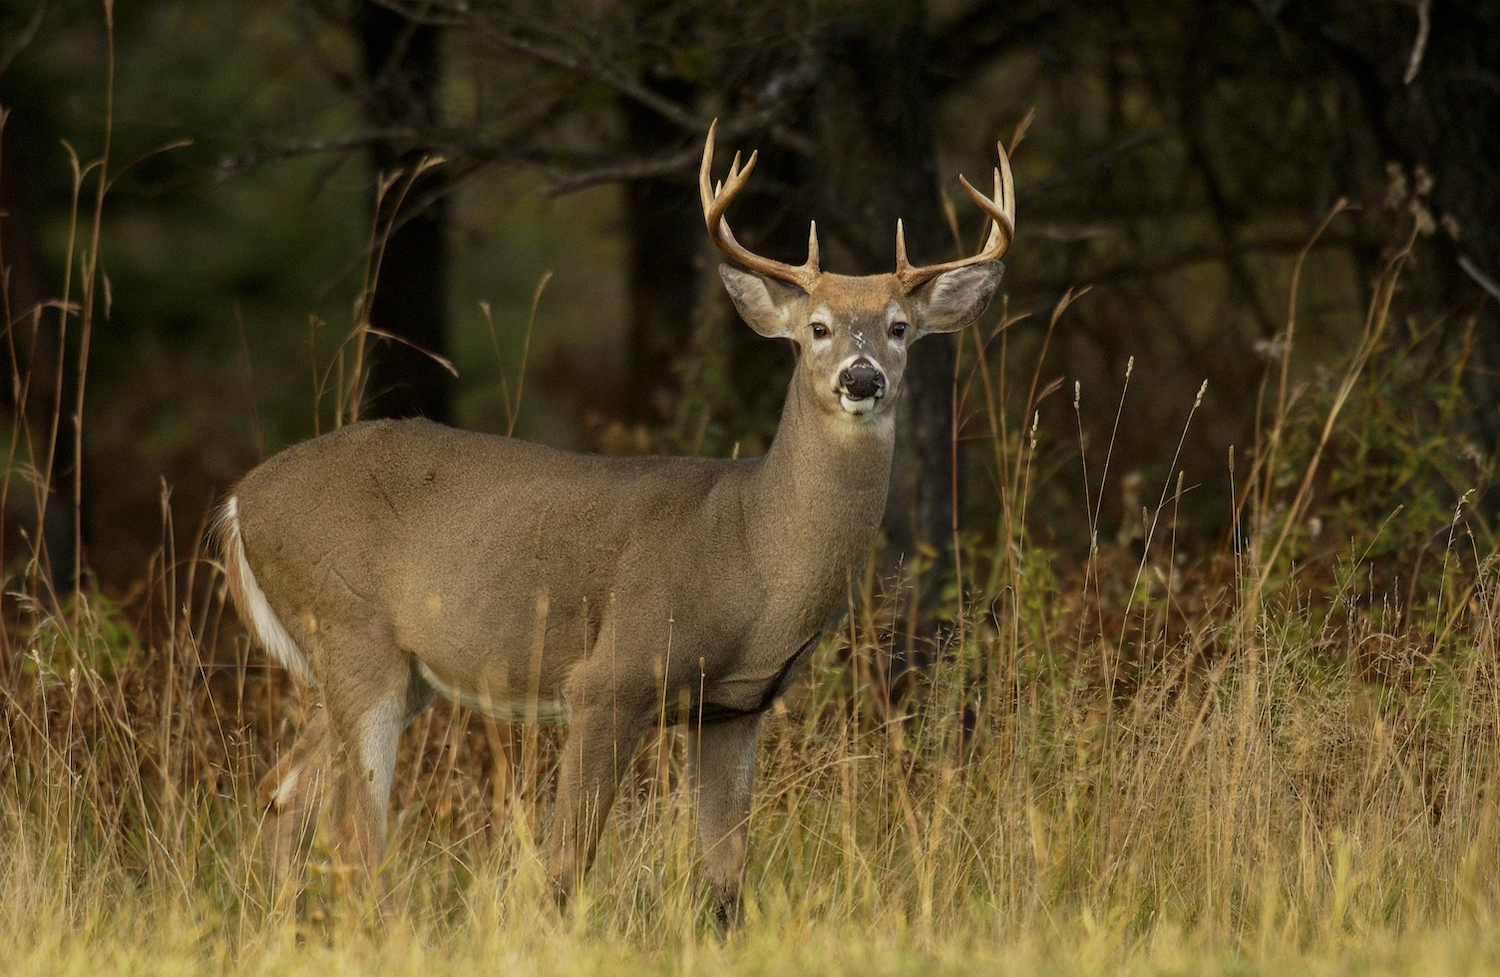 A male white-tailed deer stands in a field